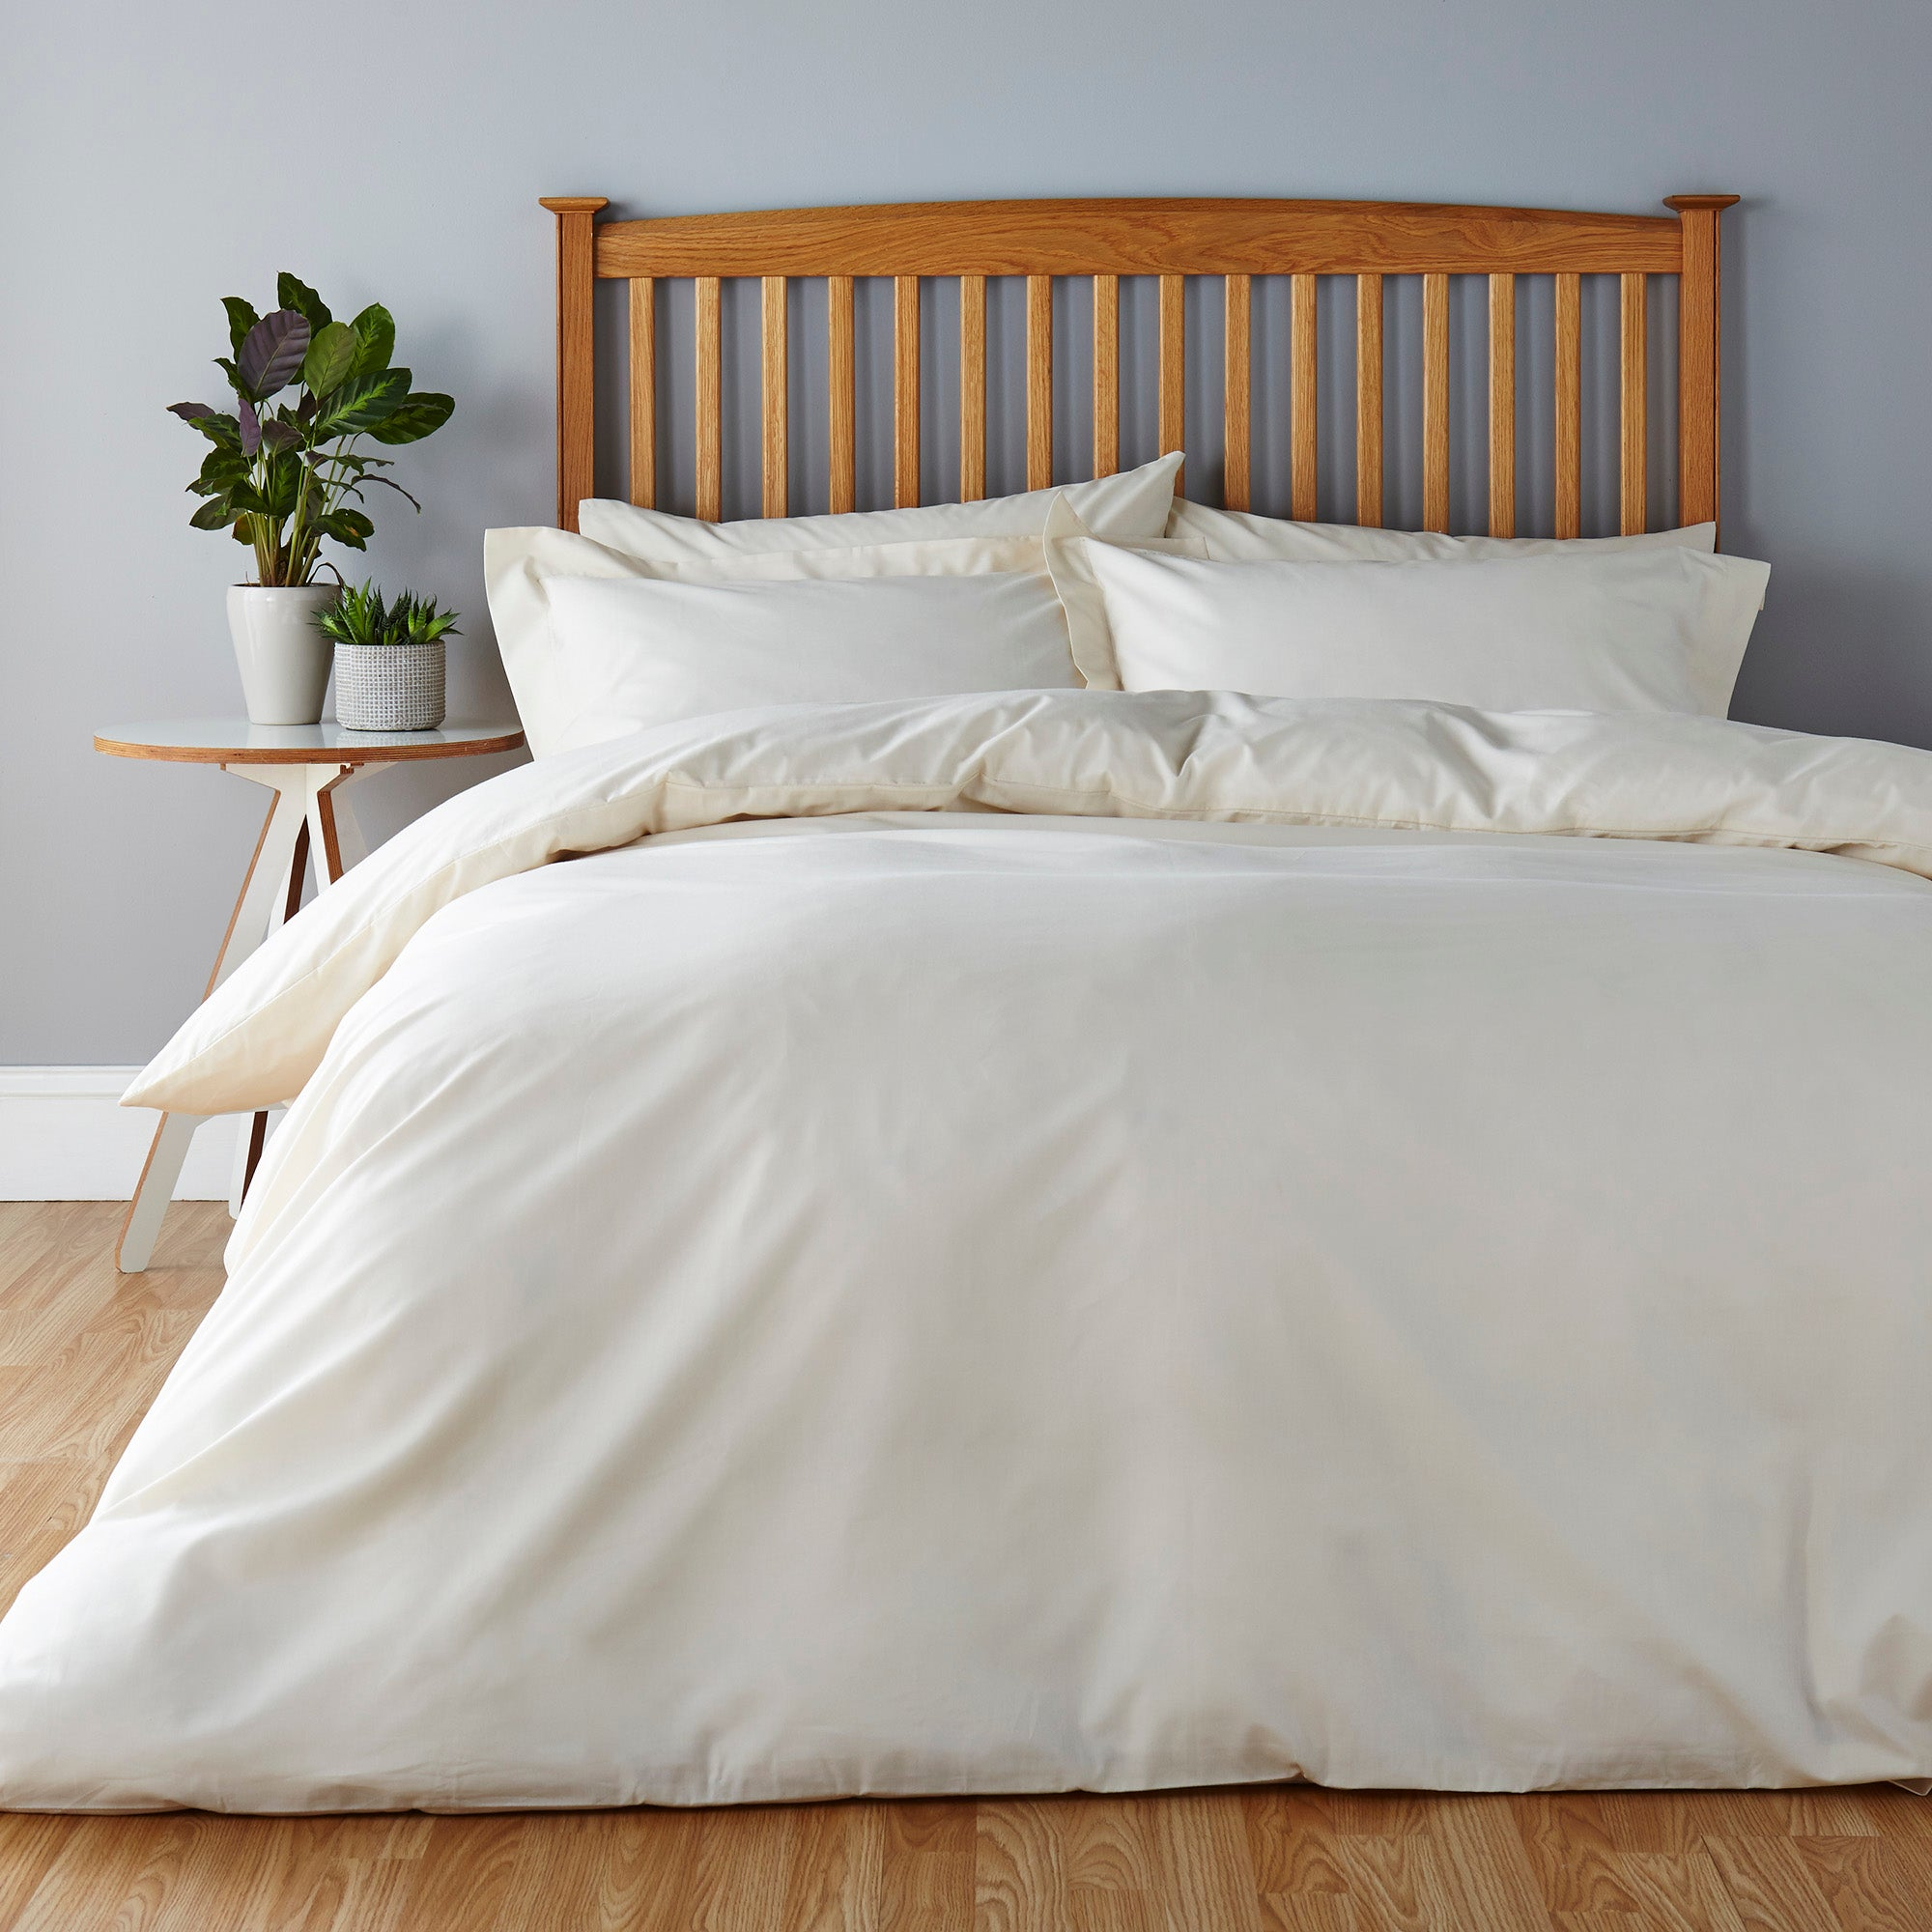 Easycare Plain Dye Cream Bed Linen Collection